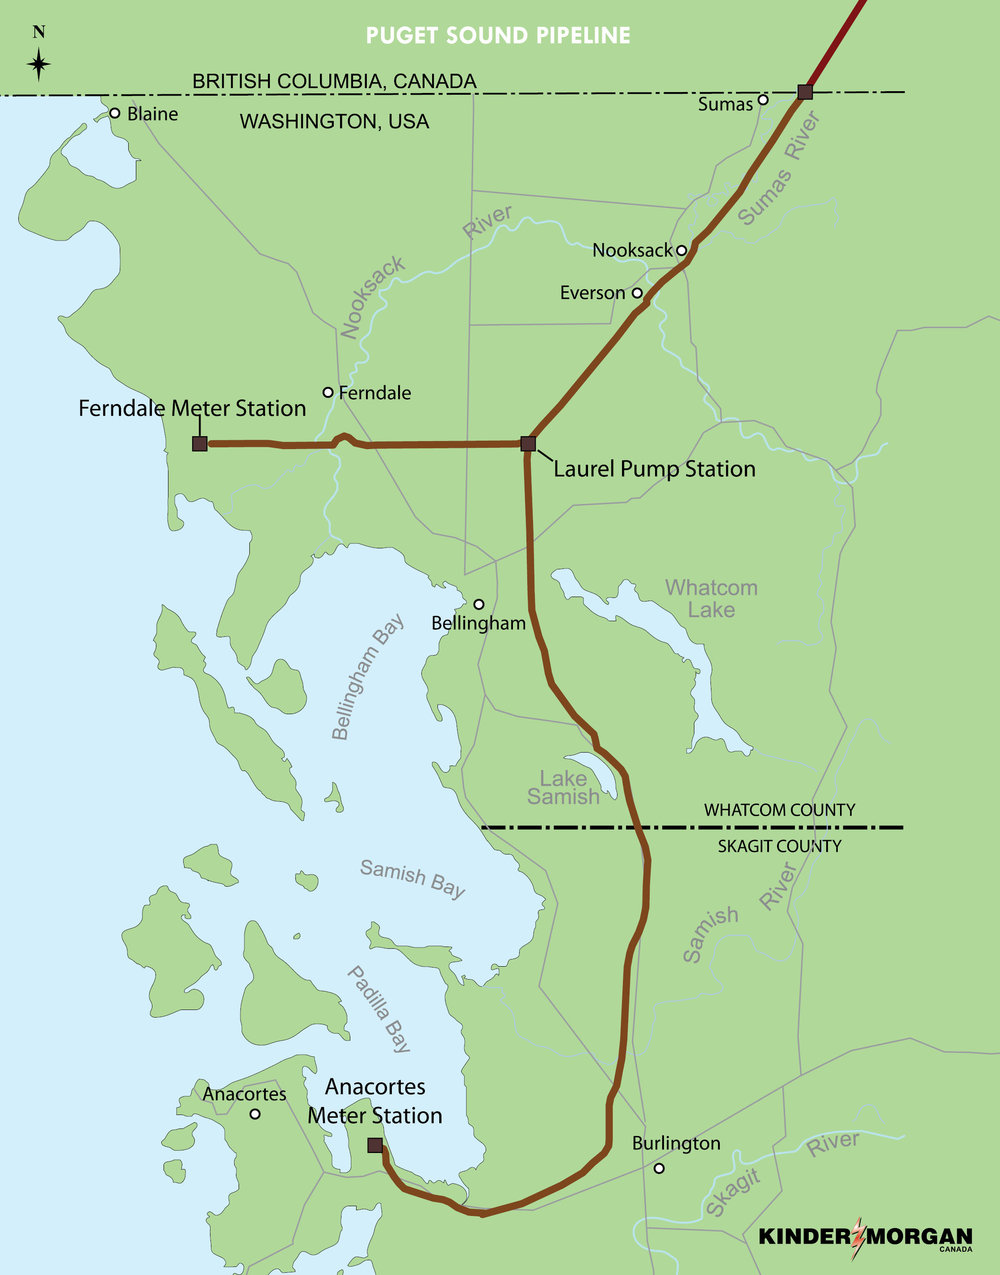 TRANS MOUNTAIN'S PUGET SOUND SYSTEM (COURTESY KINDER MORGAN)